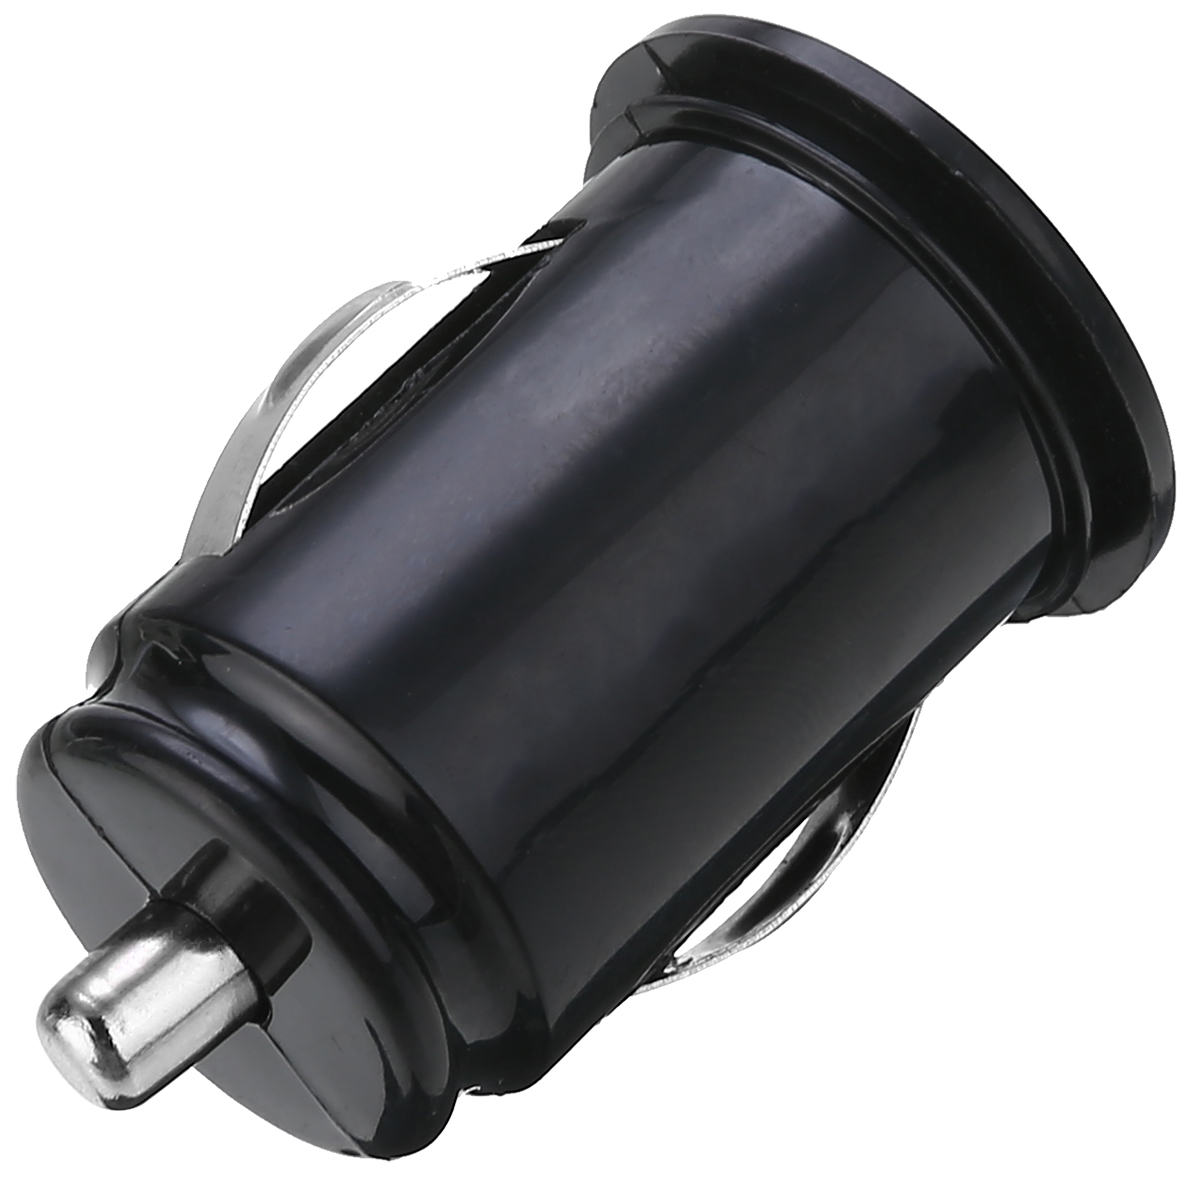 Dual <font><b>Car</b></font> <font><b>Charger</b></font> <font><b>Adapter</b></font> 12V Power Dual 2 Port <font><b>USB</b></font> <font><b>Mini</b></font> <font><b>Car</b></font> <font><b>Charger</b></font> <font><b>Adapter</b></font> For Huawei P10 For i-Phone 7 Plus 6 5s 4s 12V Power image